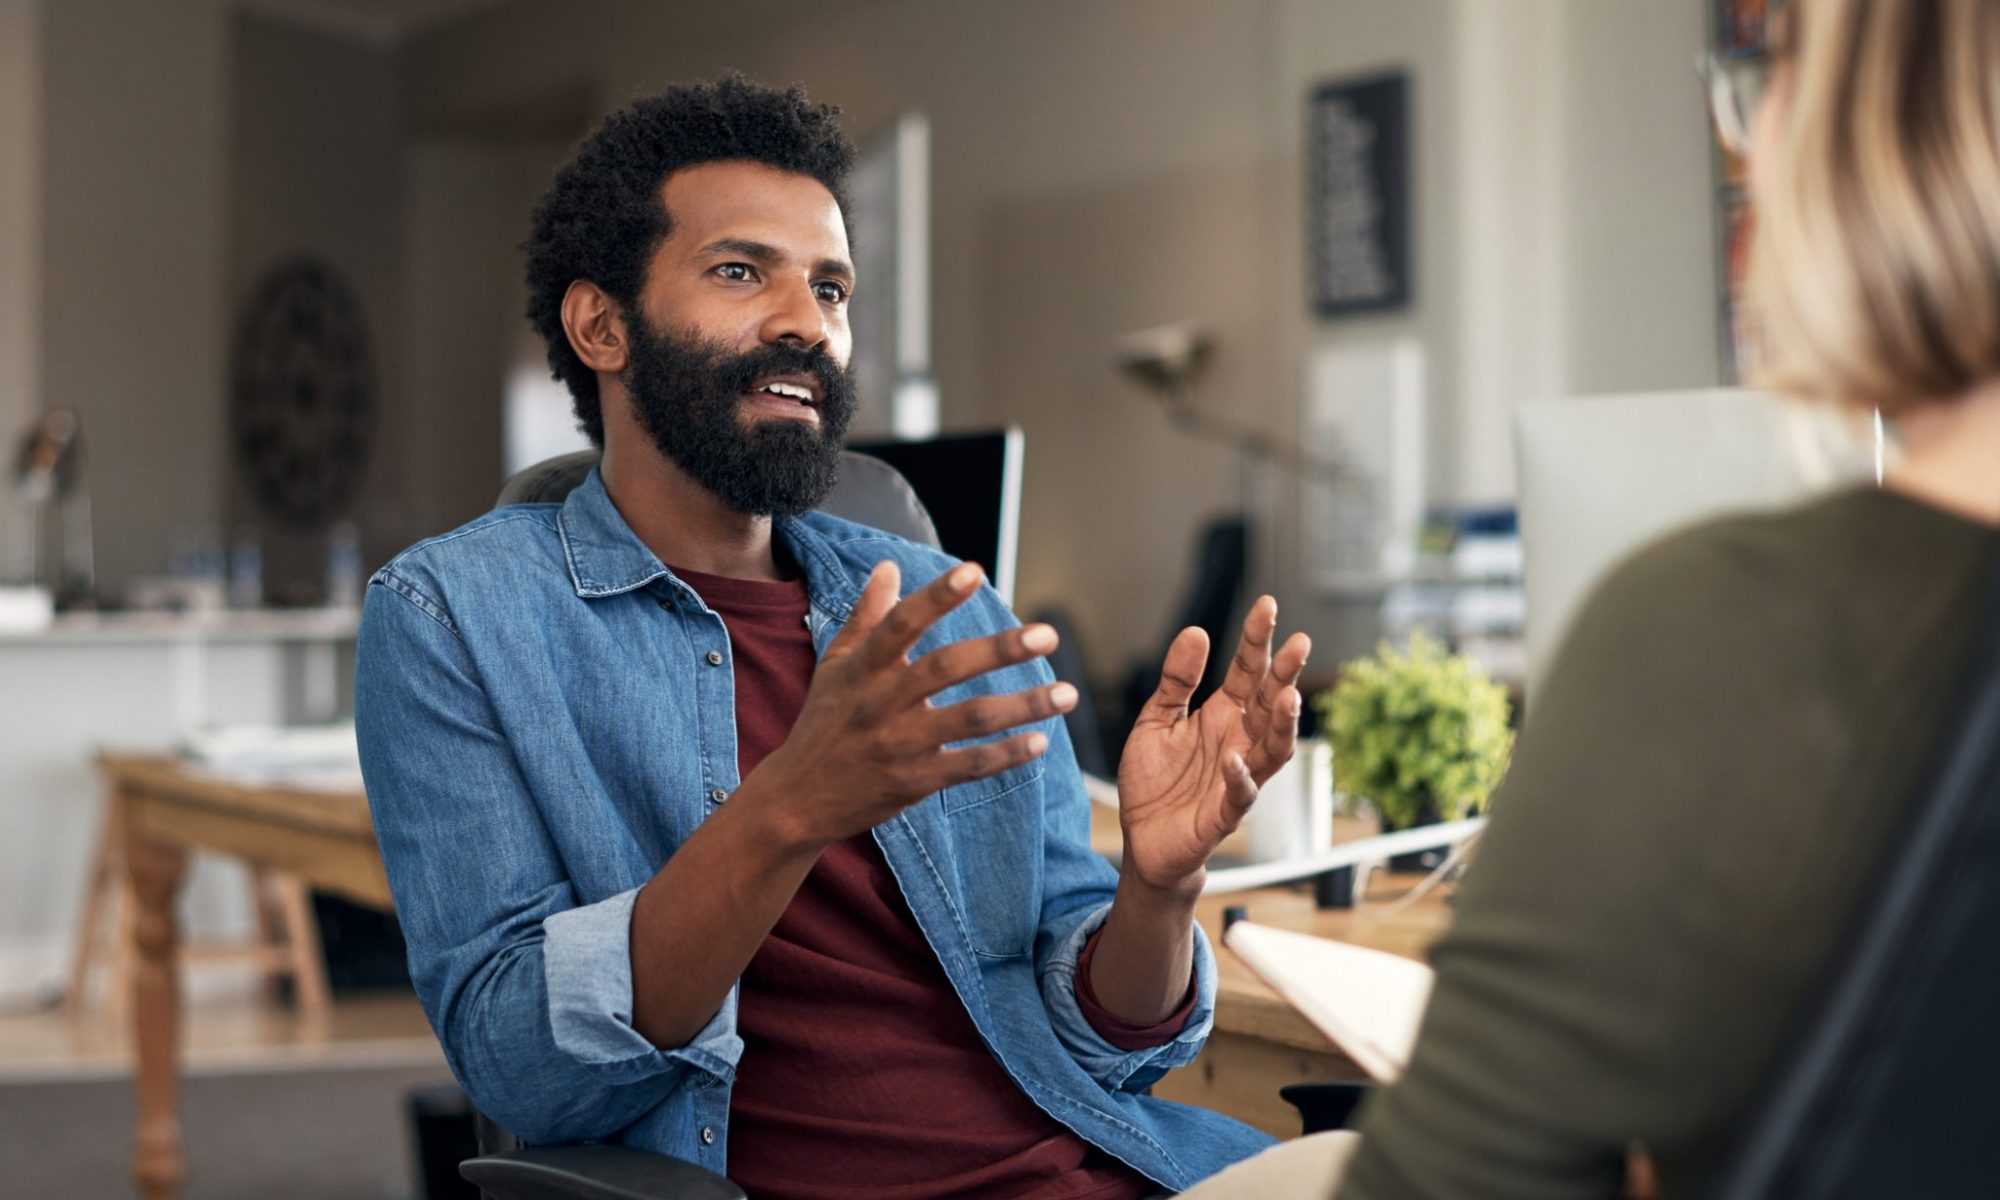 Here are two casually dressed individuals in a closed meeting in a creative office environment. The individual has short black afro hair with a black beard dressed in a maroon tee shirt and a denim long-sleeved on top.